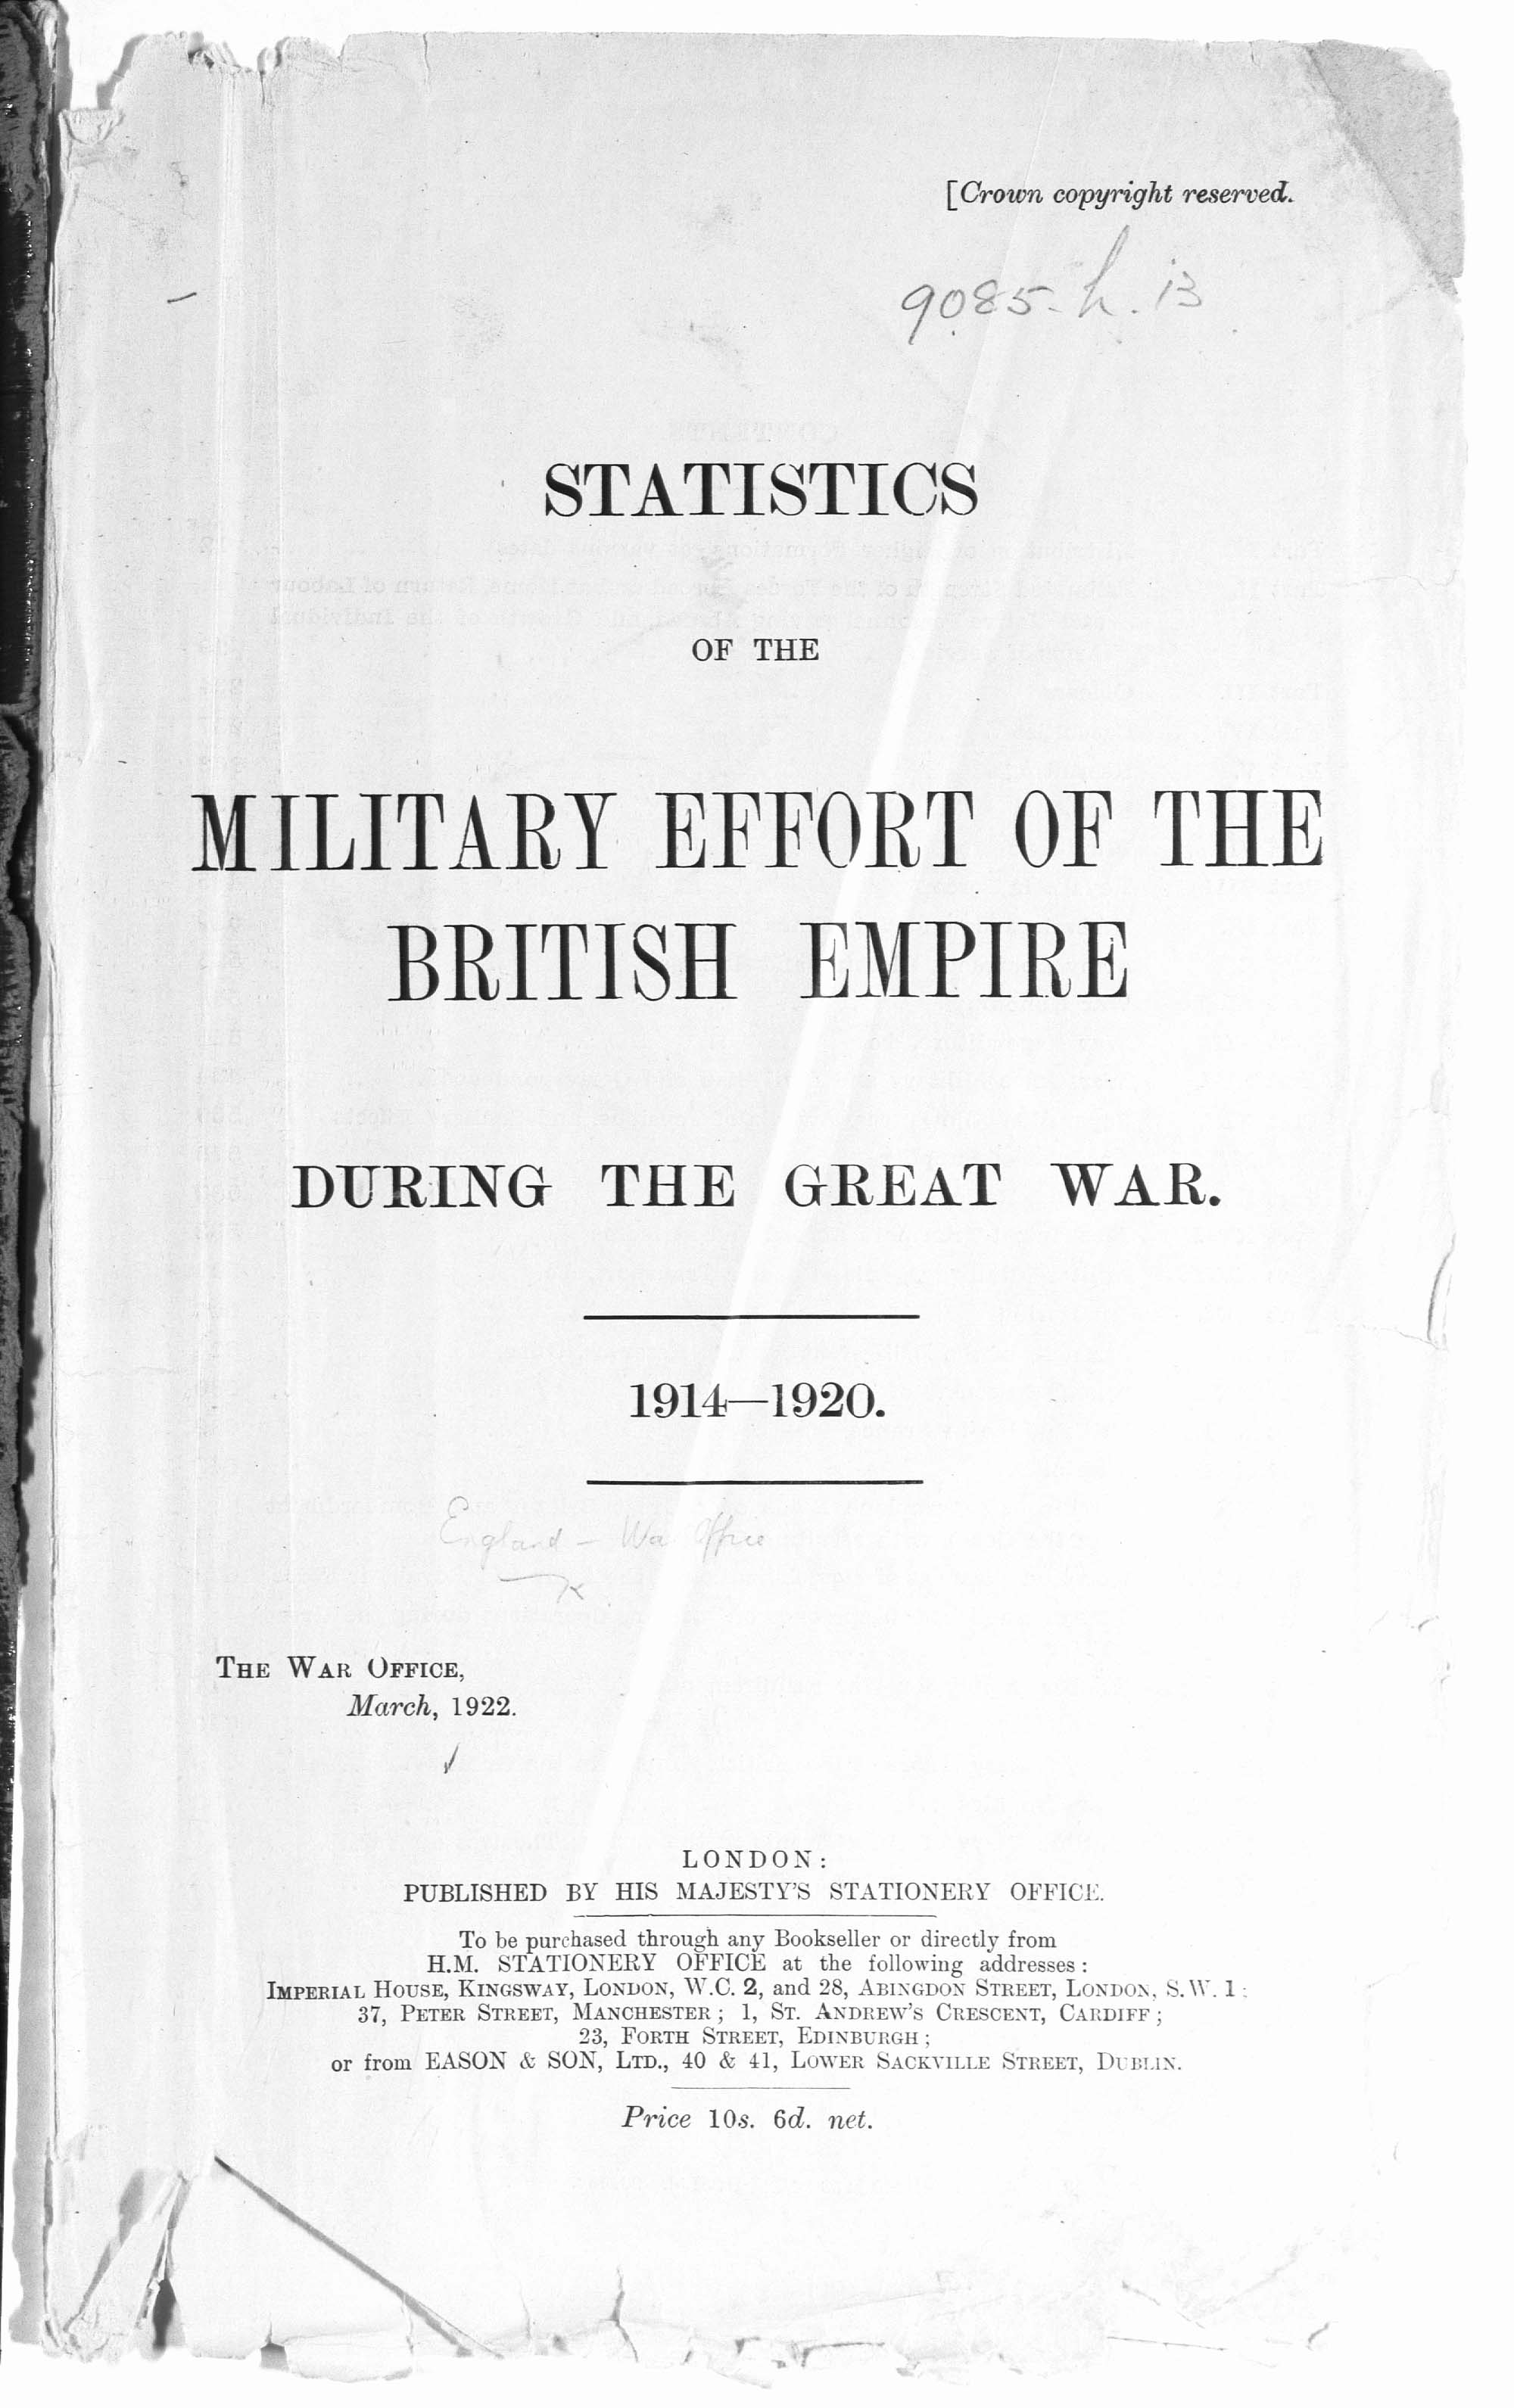 Statistics of the Military Effort of the British Empire during the Great War